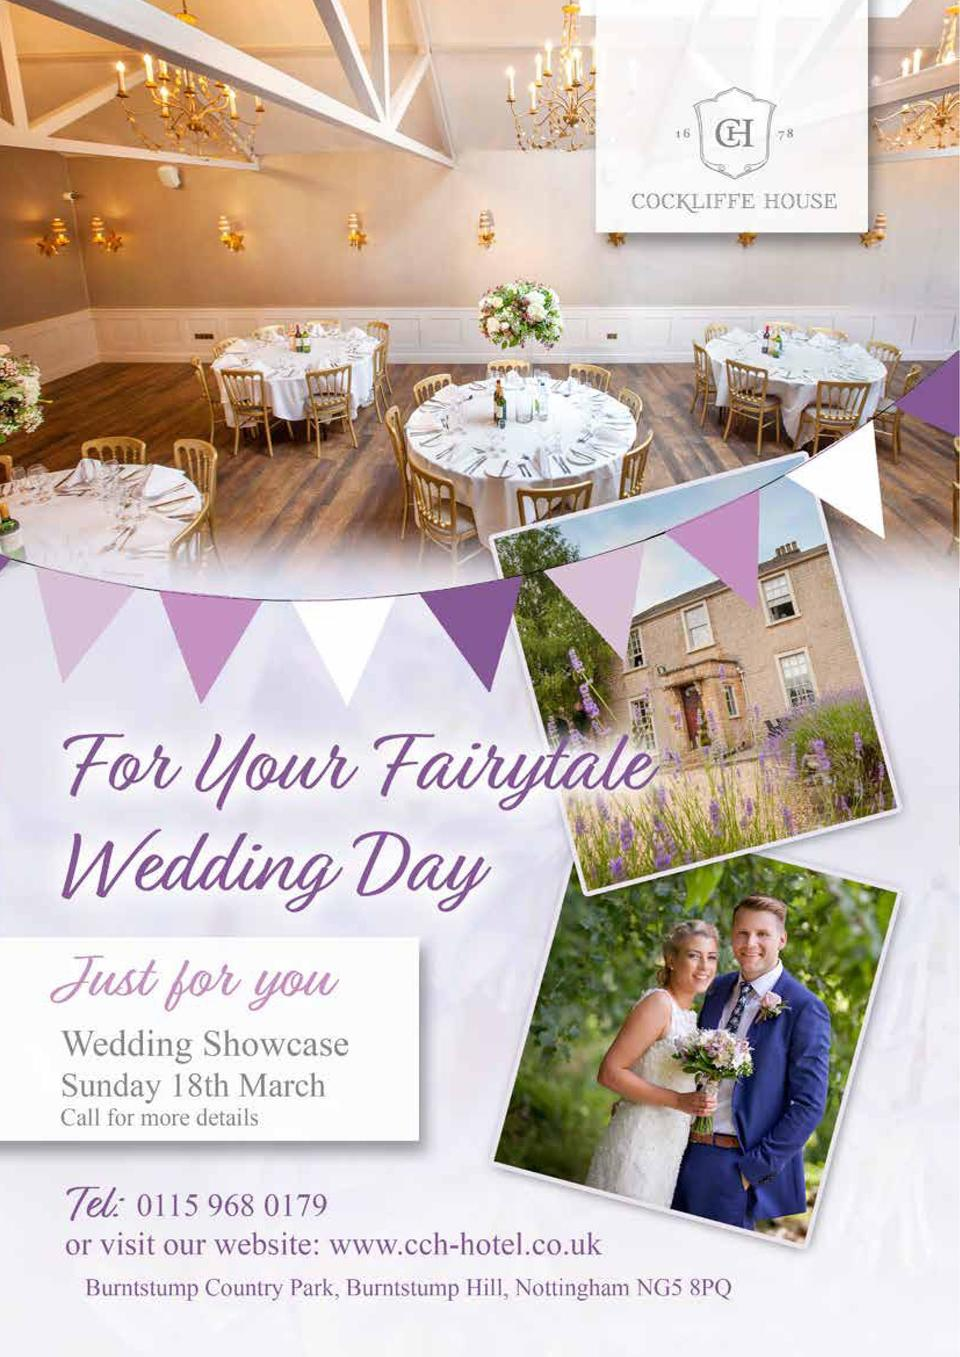 Your wedding day should be the most magical day of your life which you and your loved ones will treasure forever, making t...